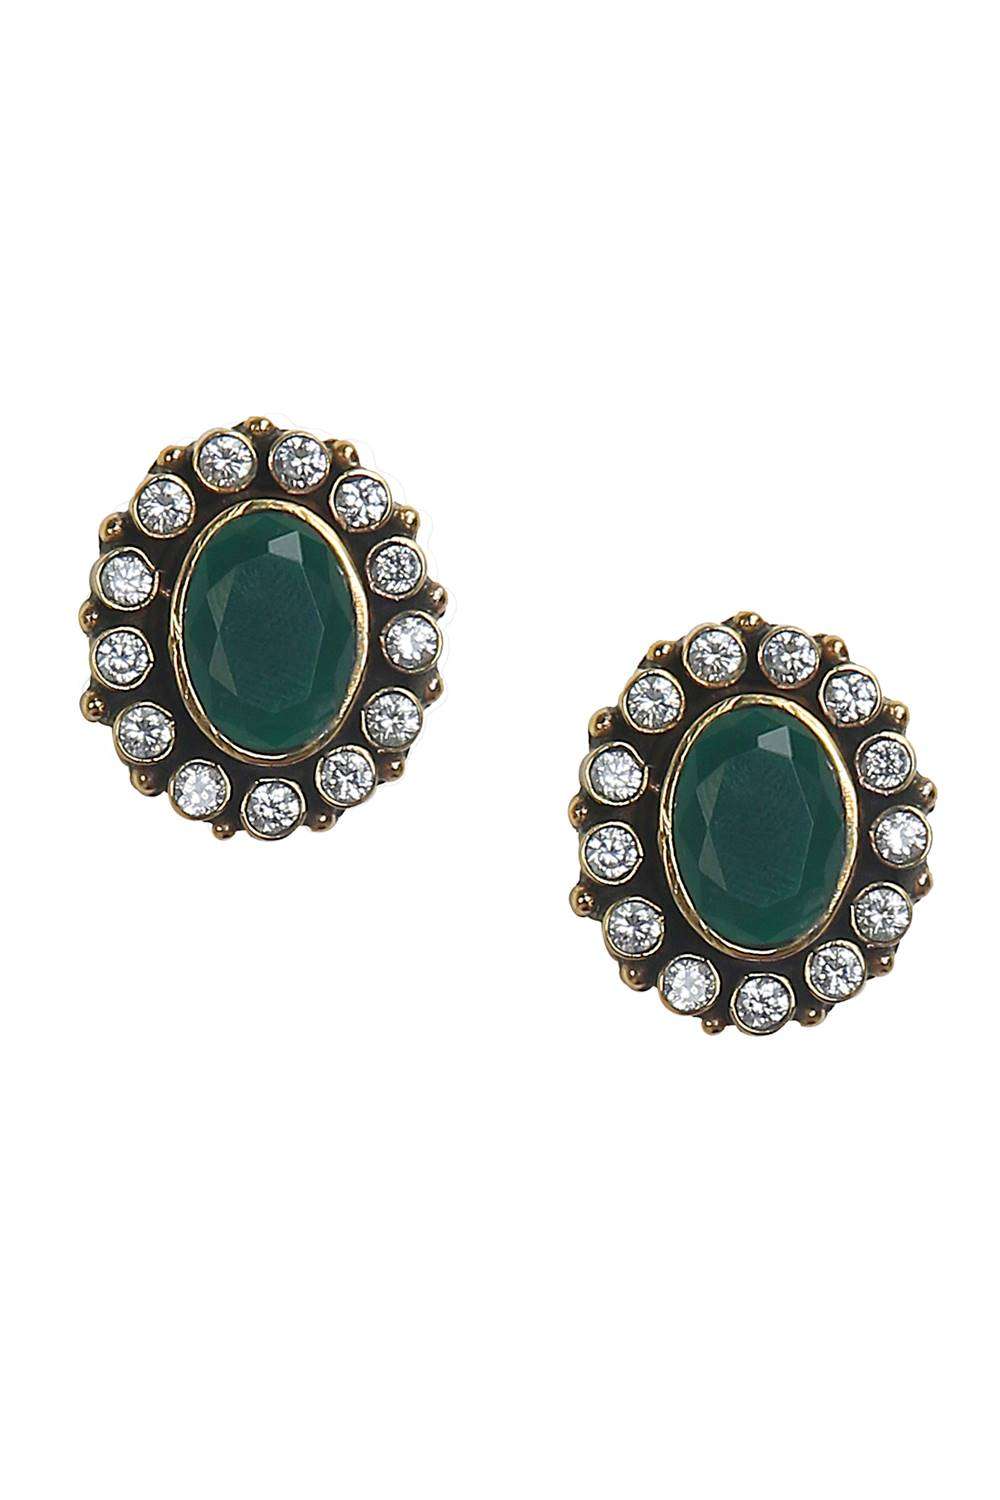 nl in jewelry white earrings for stud round cut men gold emerald green wg mens with